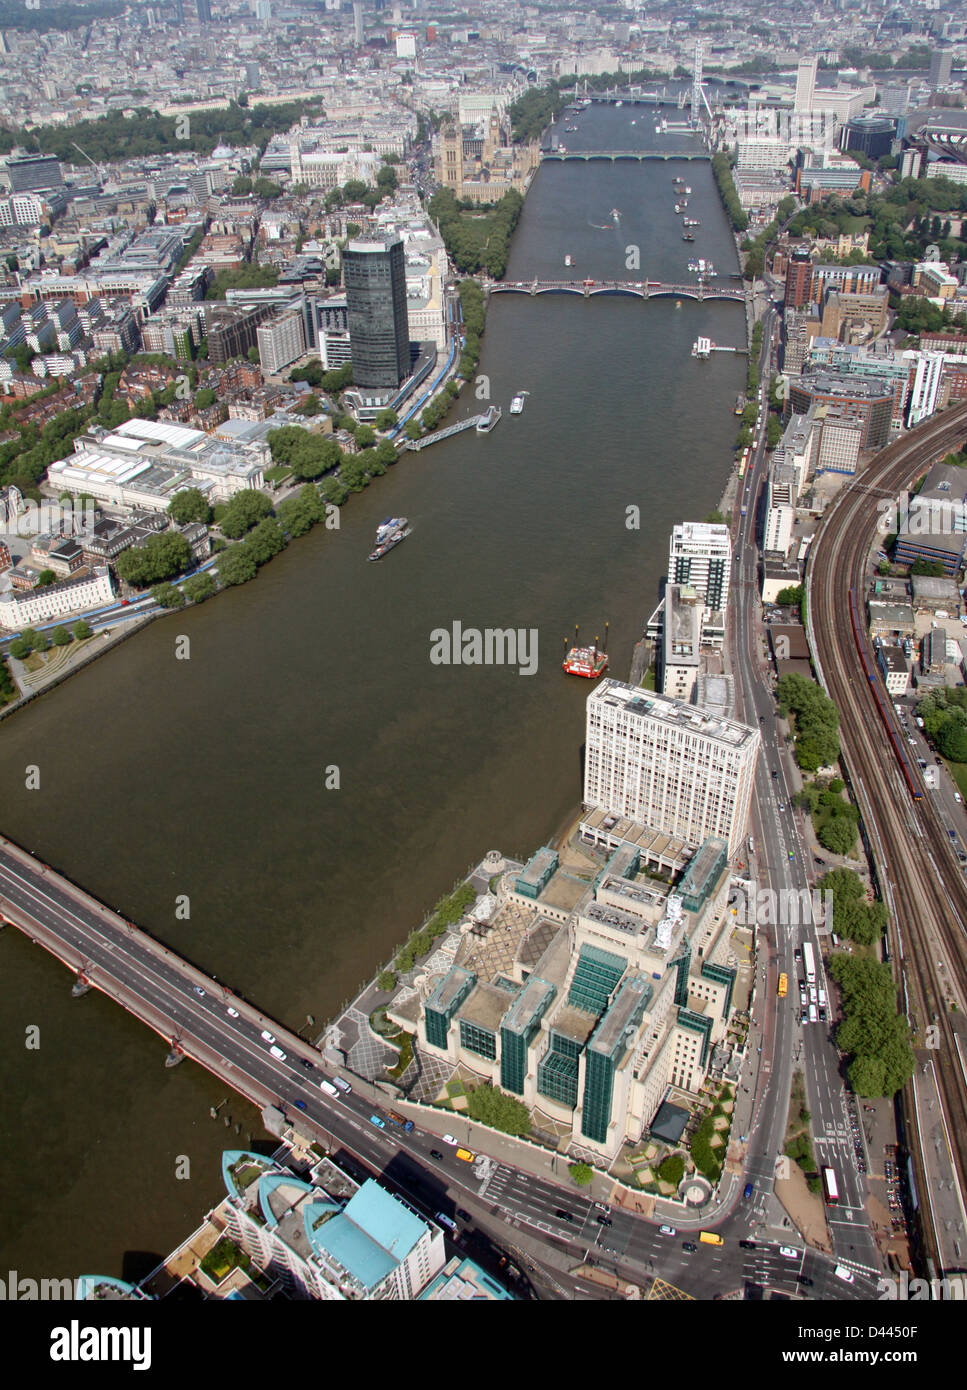 aerial view of the MI6 building at Lambeth, London - Stock Image